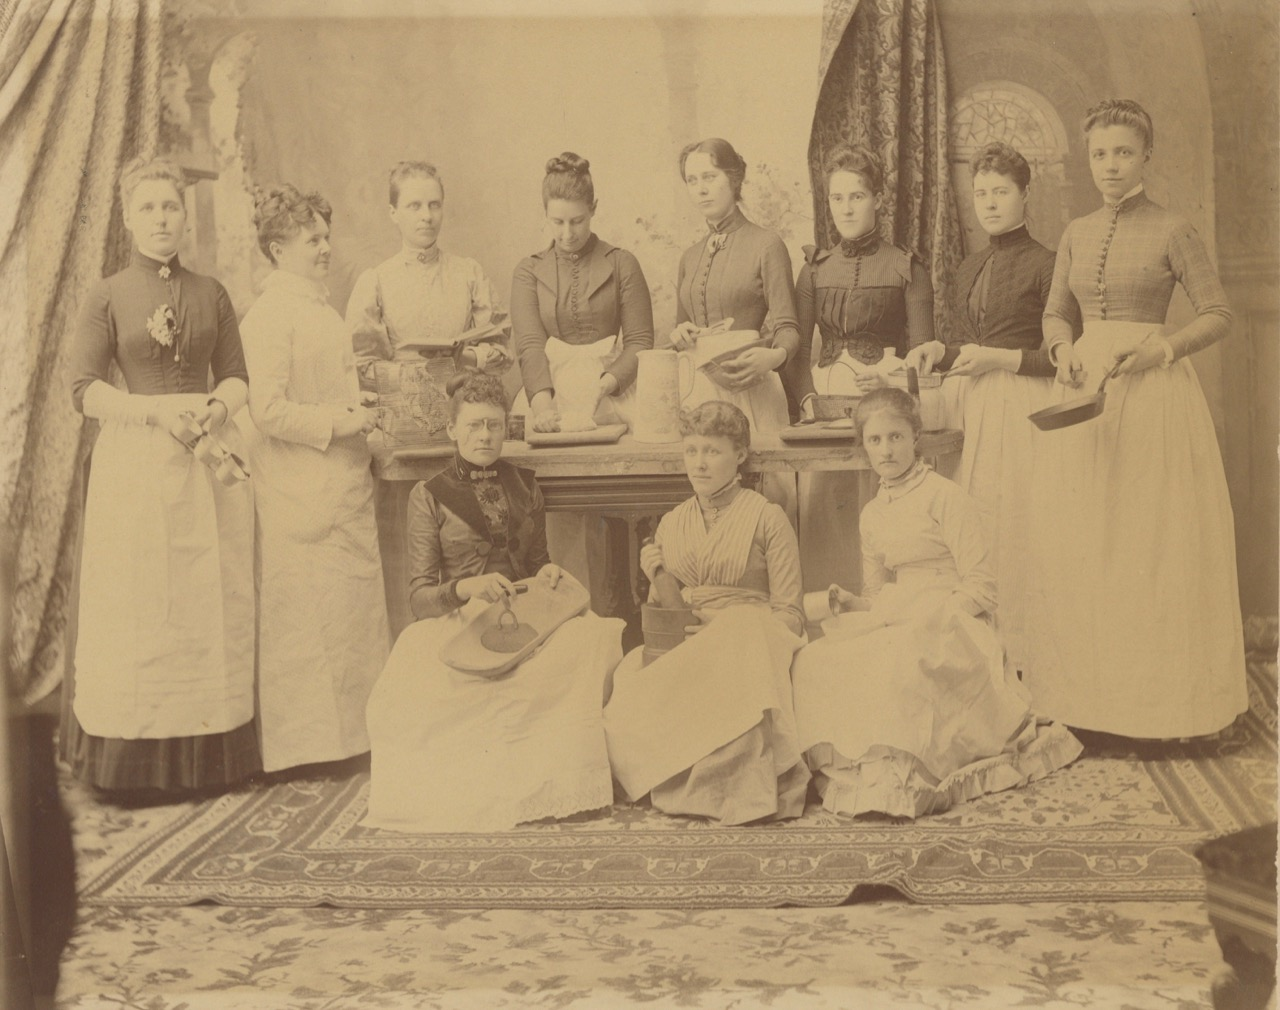 [Fannie Farmer and her classmates at the Boston Cooking School or at Miss Farmer's School of Cookery]. Fannie Farmer, Elmer Chickering, photographer.